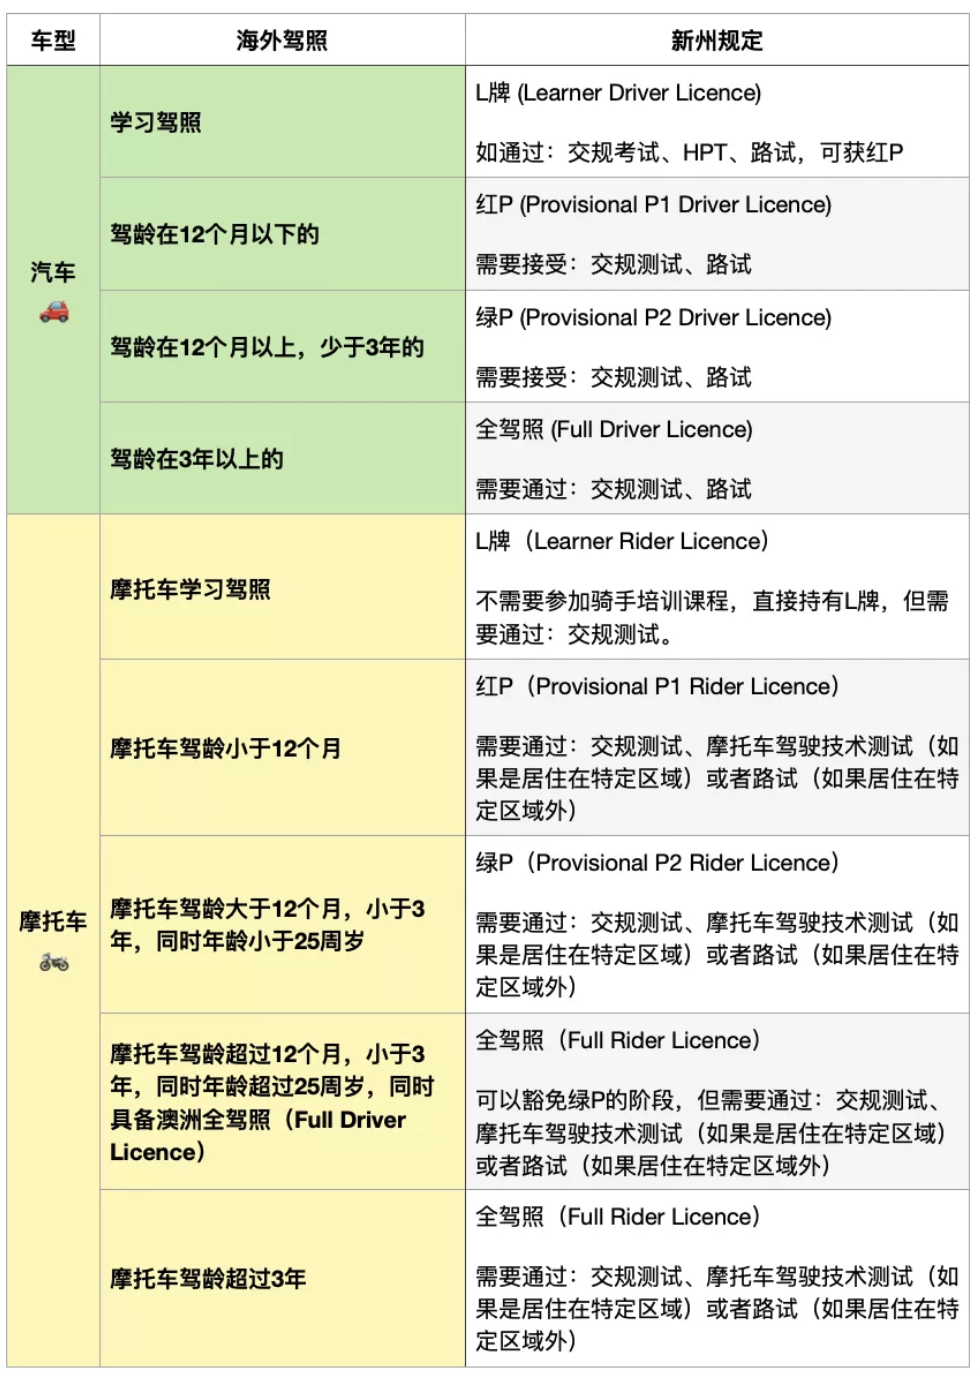 WX20210406-152230@2x.png